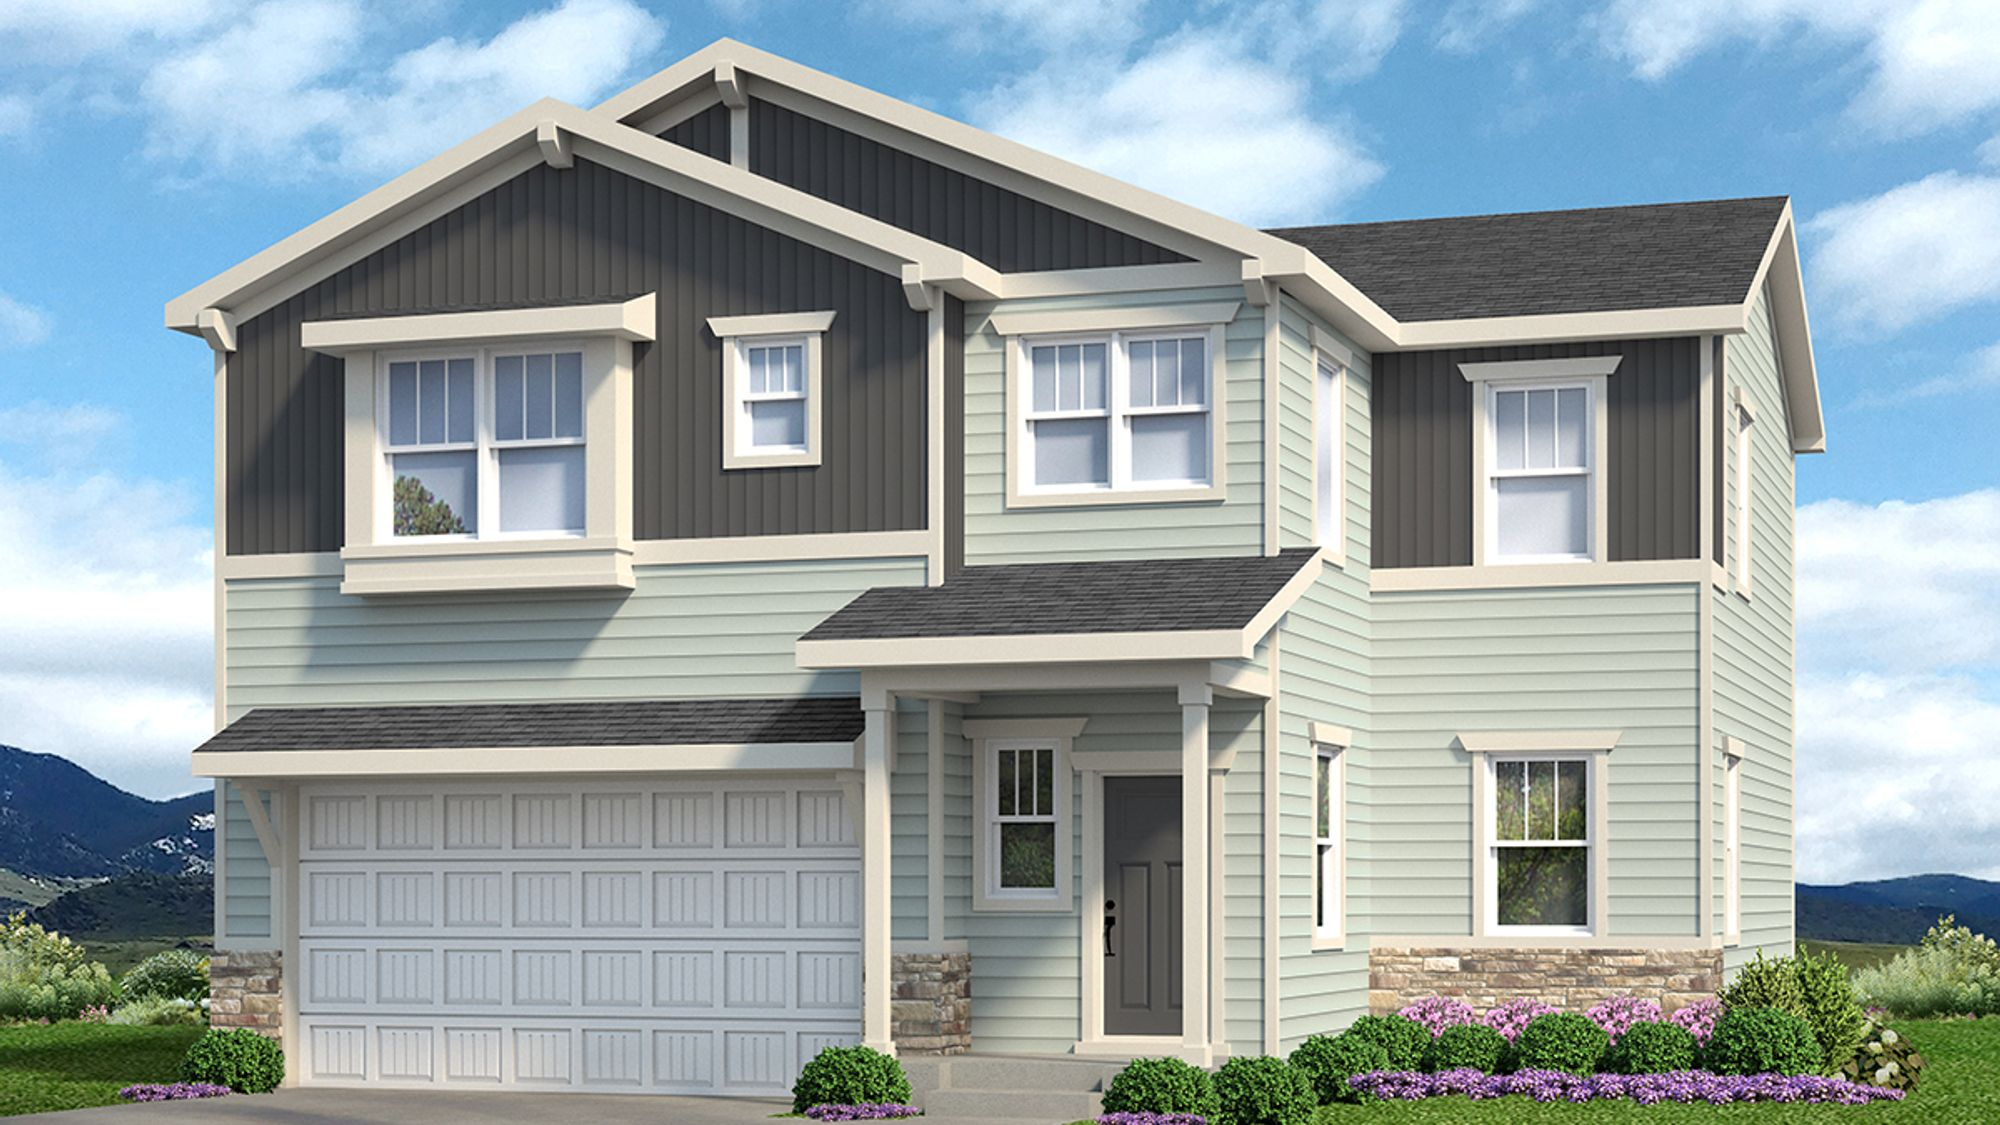 Welby 605B - Craftsman Elevation - Example